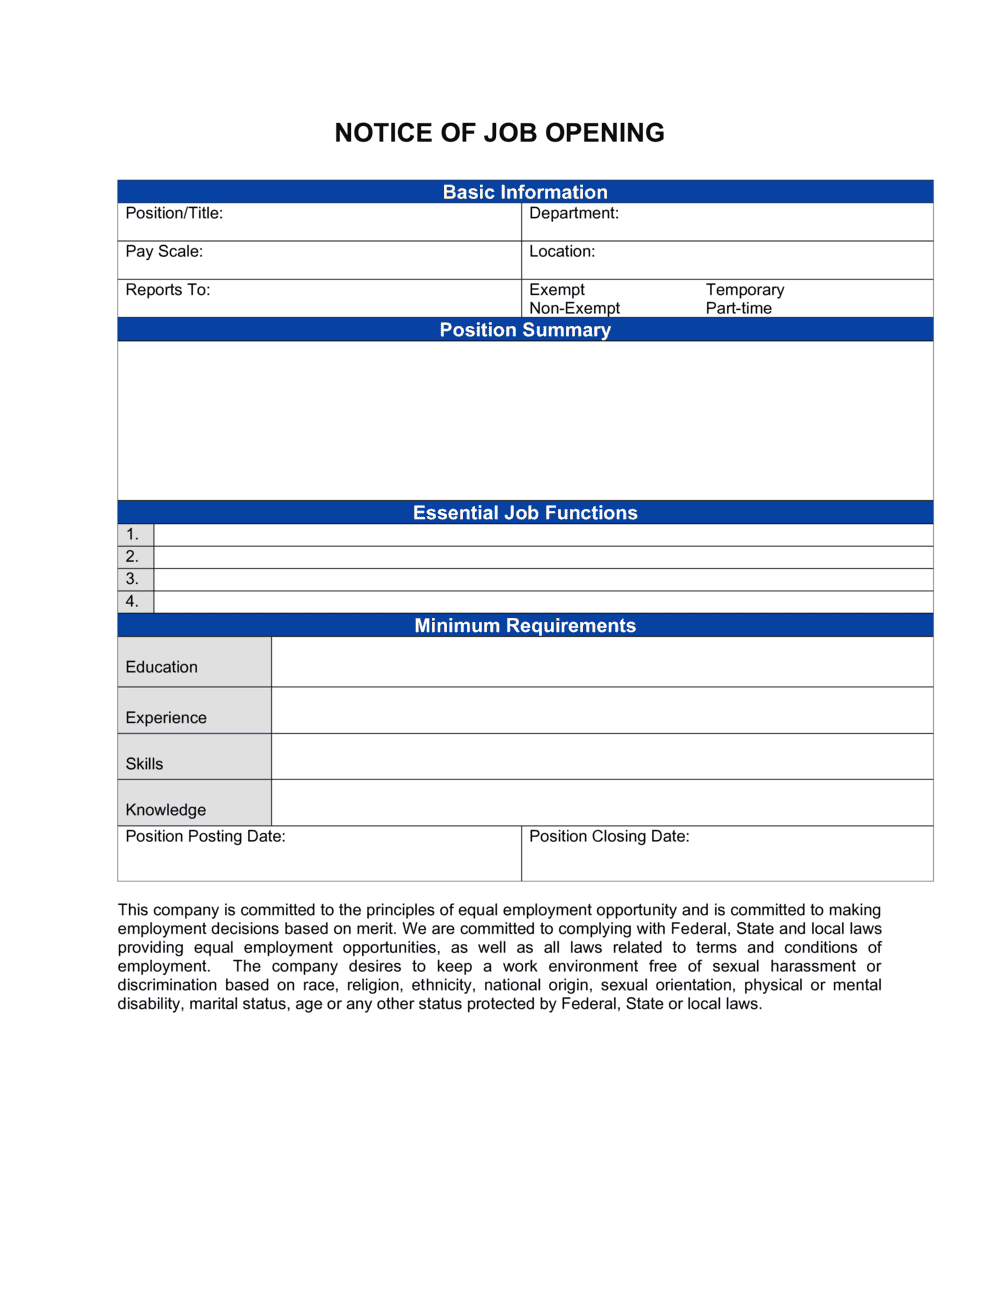 Business-in-a-Box's Notice of Job Opening_Form Template